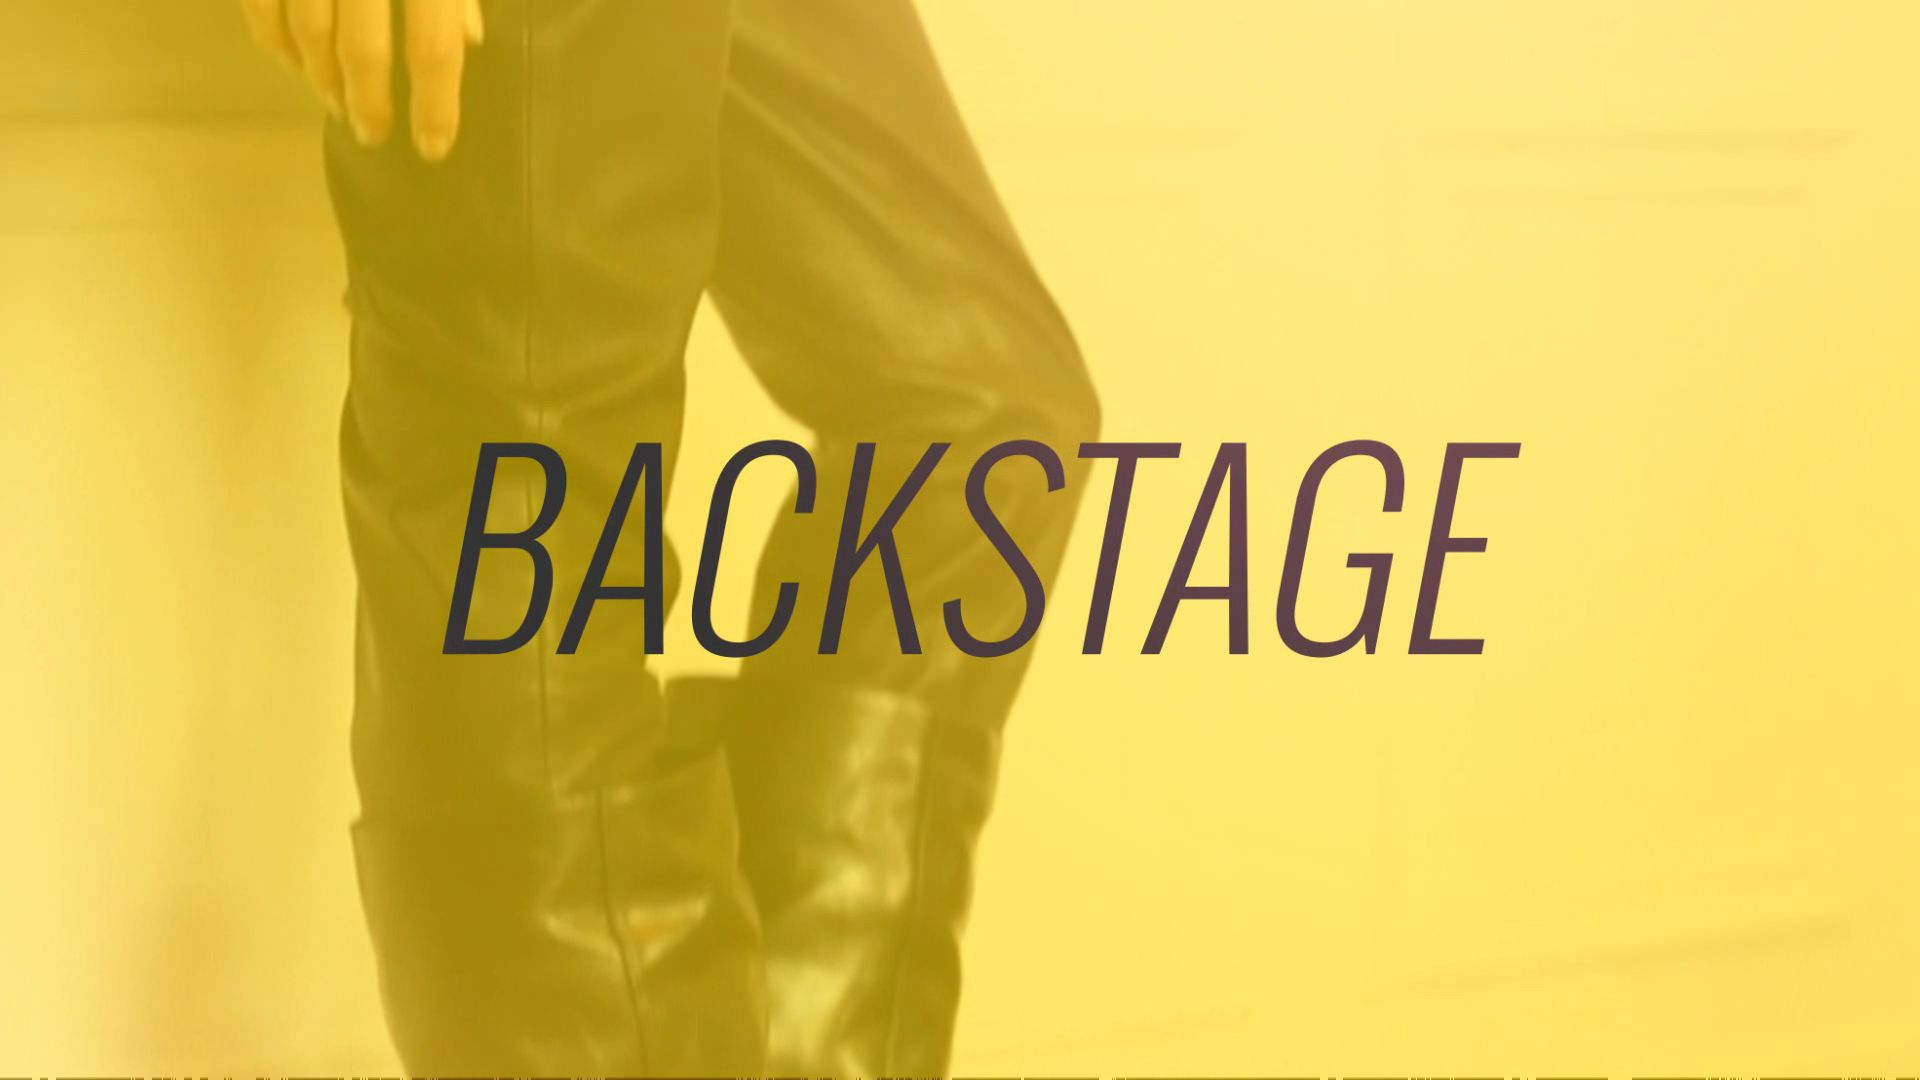 Videohive - Backstage Opener 8929470 - Free After Effects Template